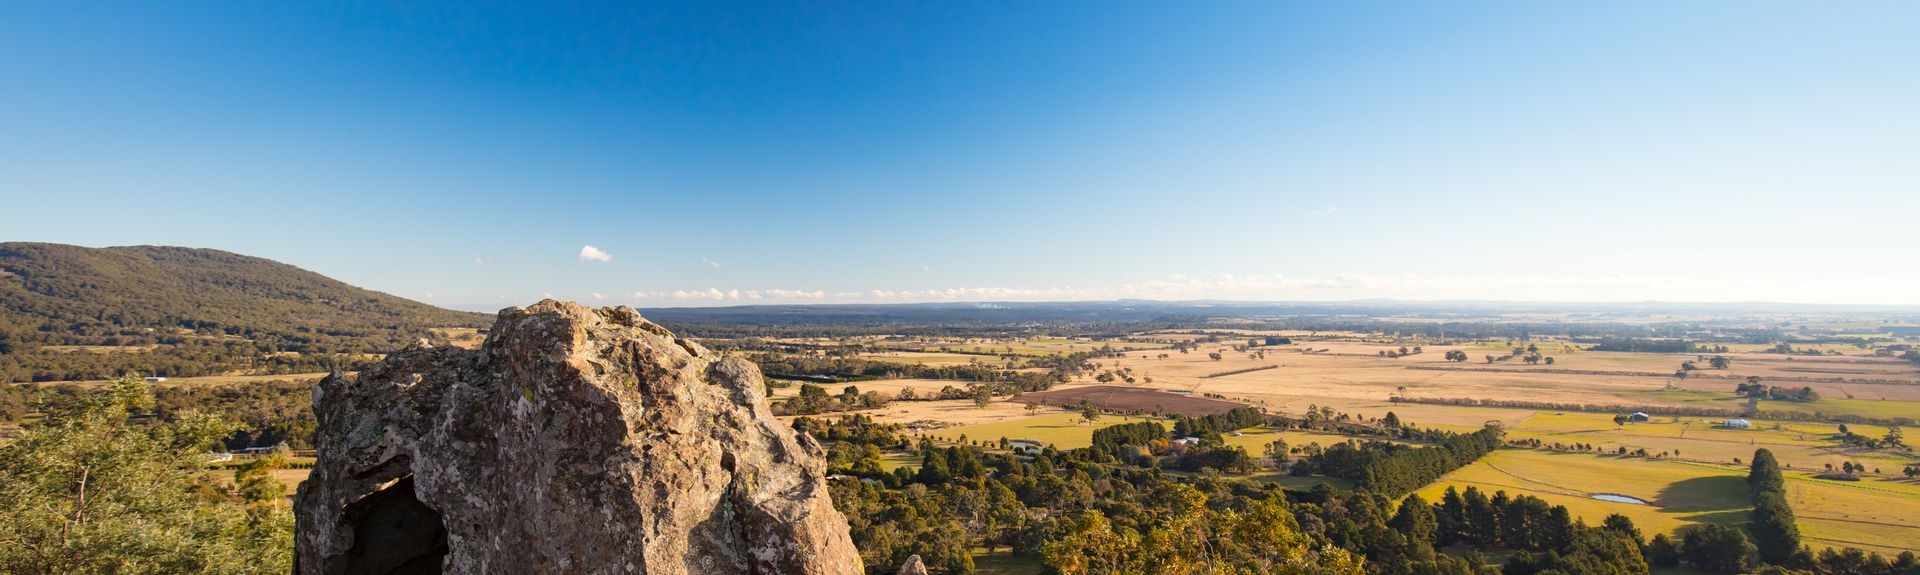 Daylesford and the Macedon Ranges, Victoria, Australia